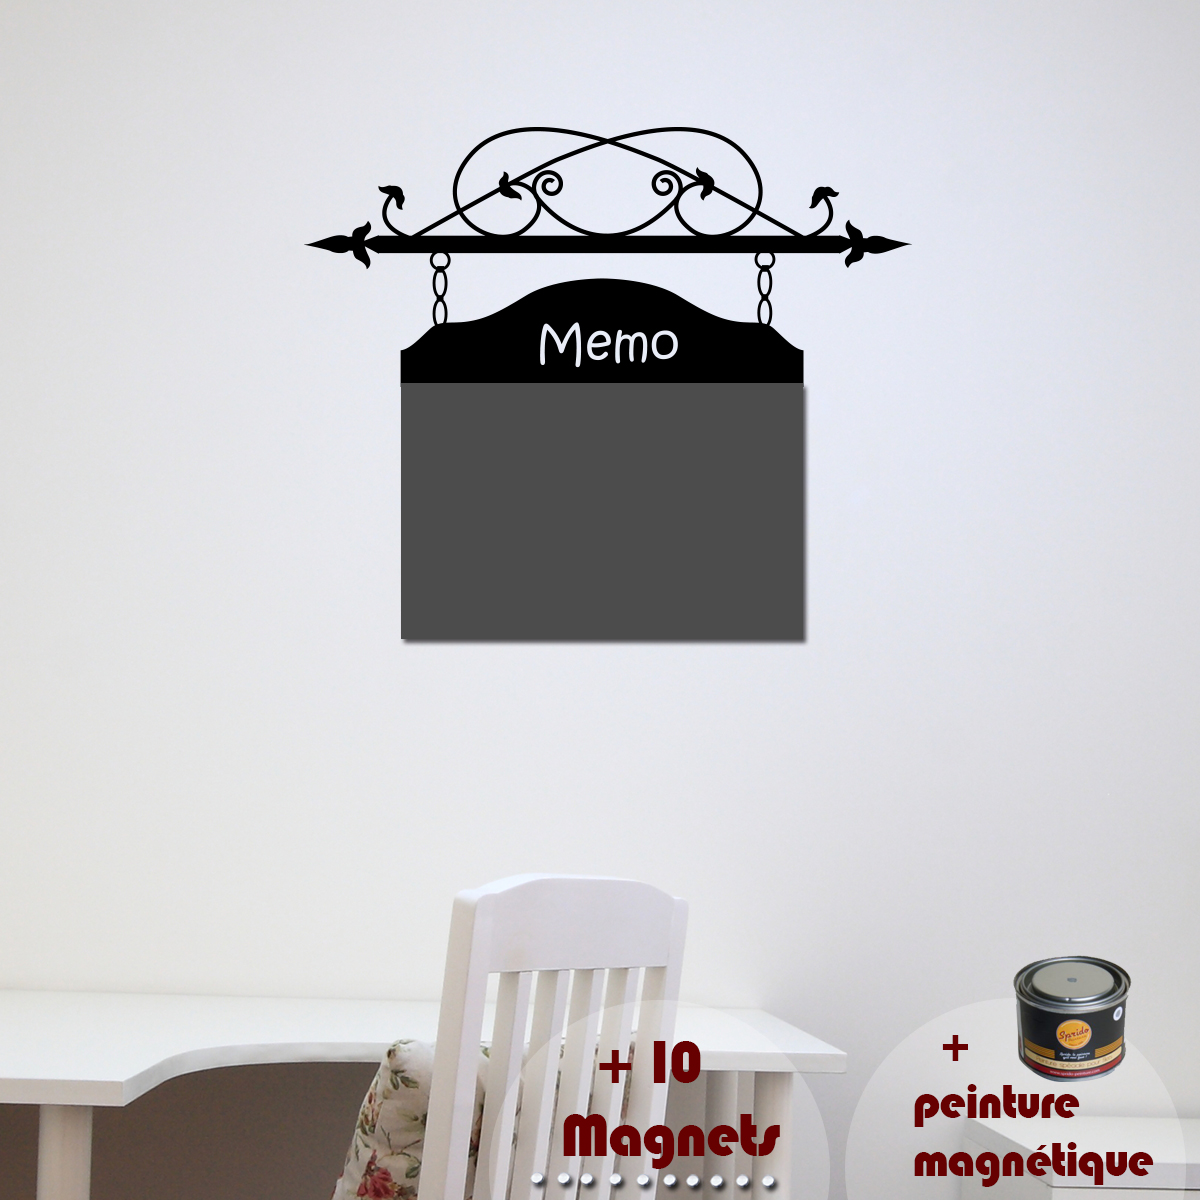 papier peint magn tique peinture magn tique avec sticker memo ambiance. Black Bedroom Furniture Sets. Home Design Ideas